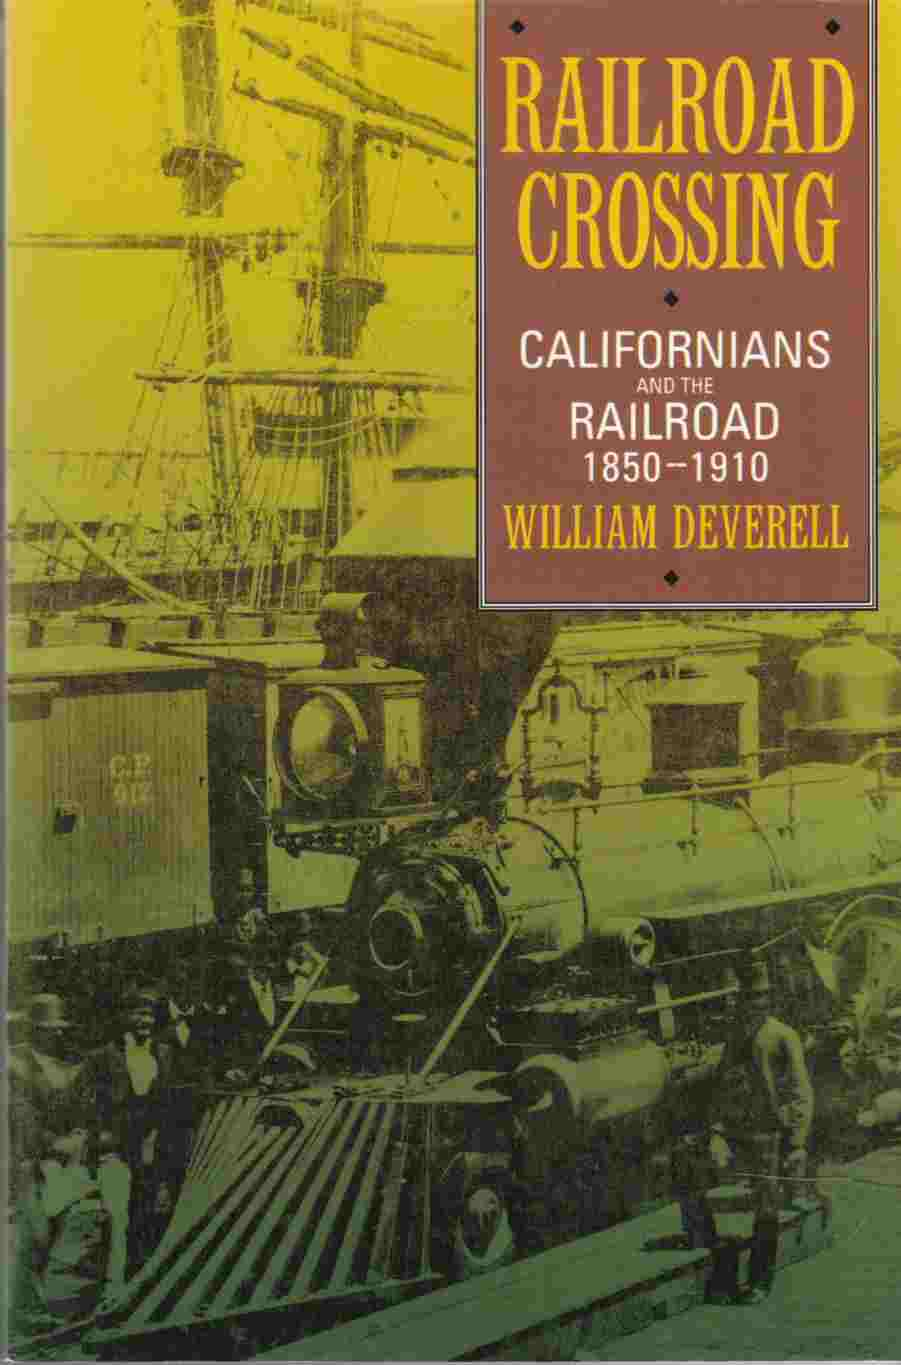 Image for Railroad Crossing Californians and the Railroad 1850 - 1910